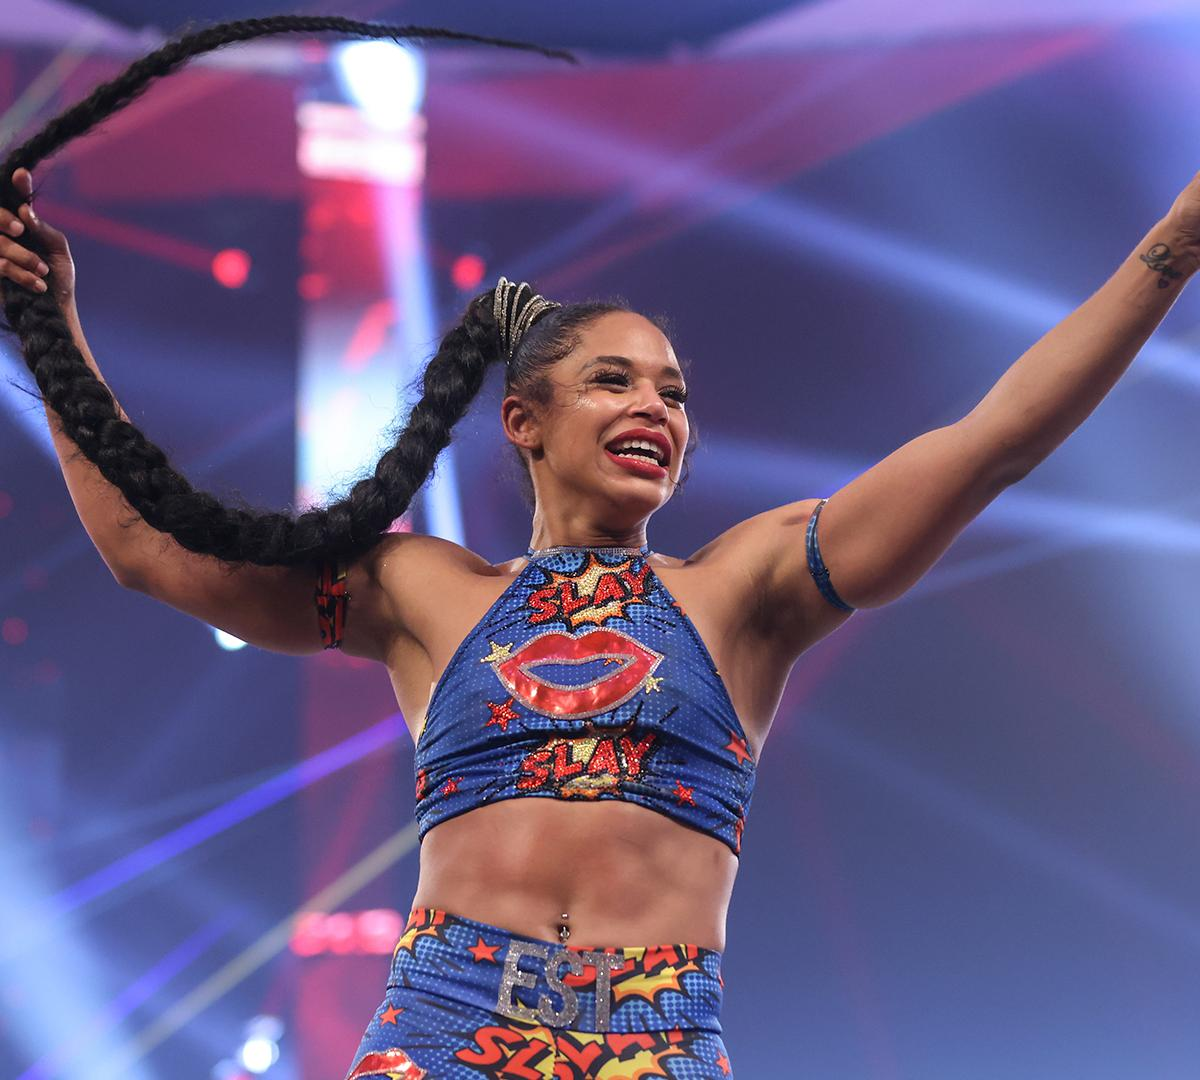 Bianca Belair Beats Bayley, Retains SmackDown Women's Title at Hell in a Cell